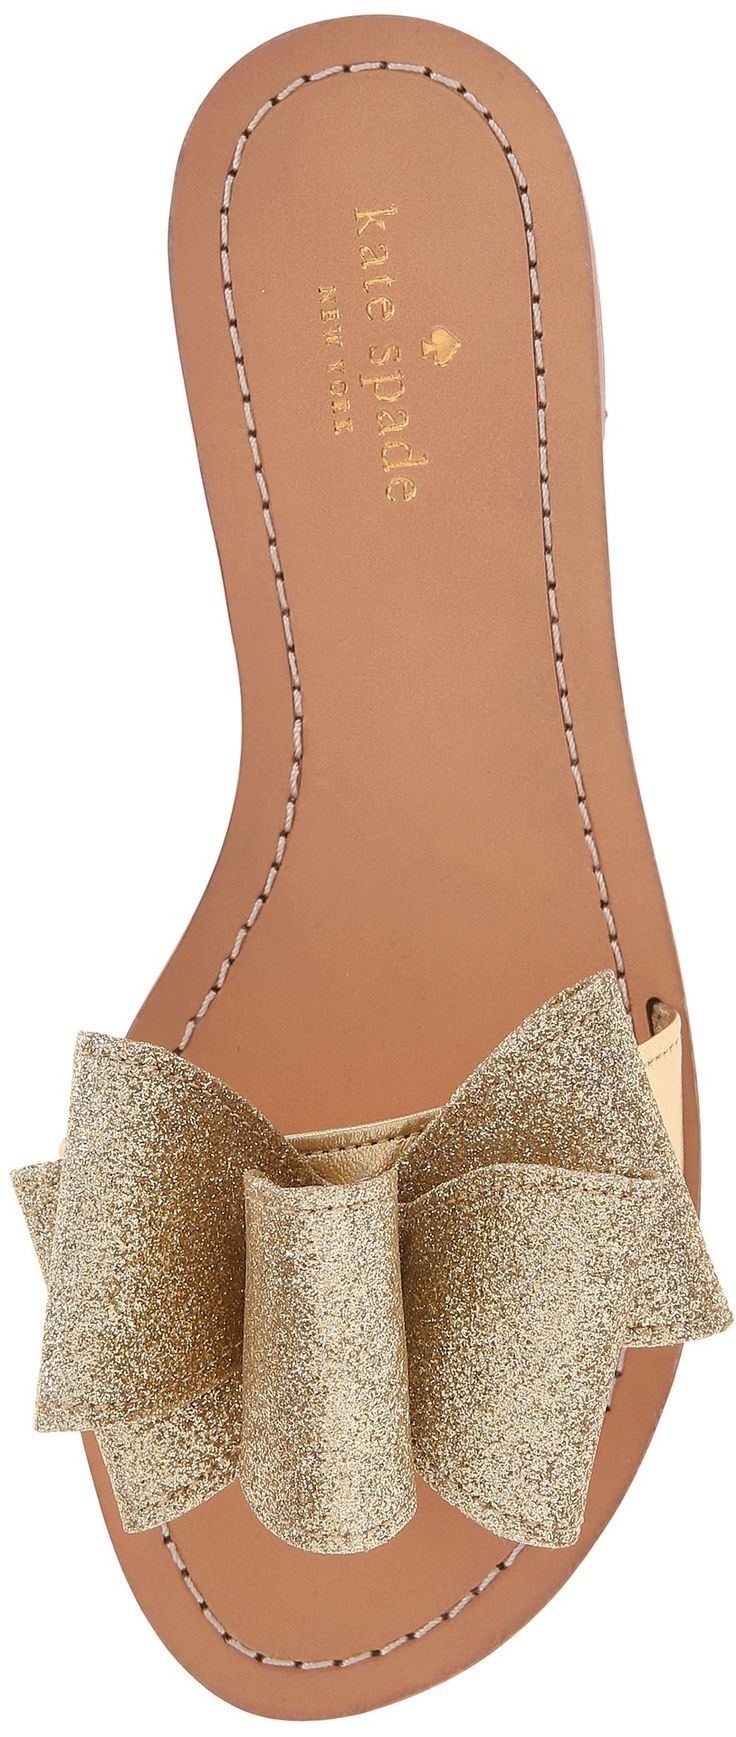 Kate Spade Glitter Bow Sandals | Bow